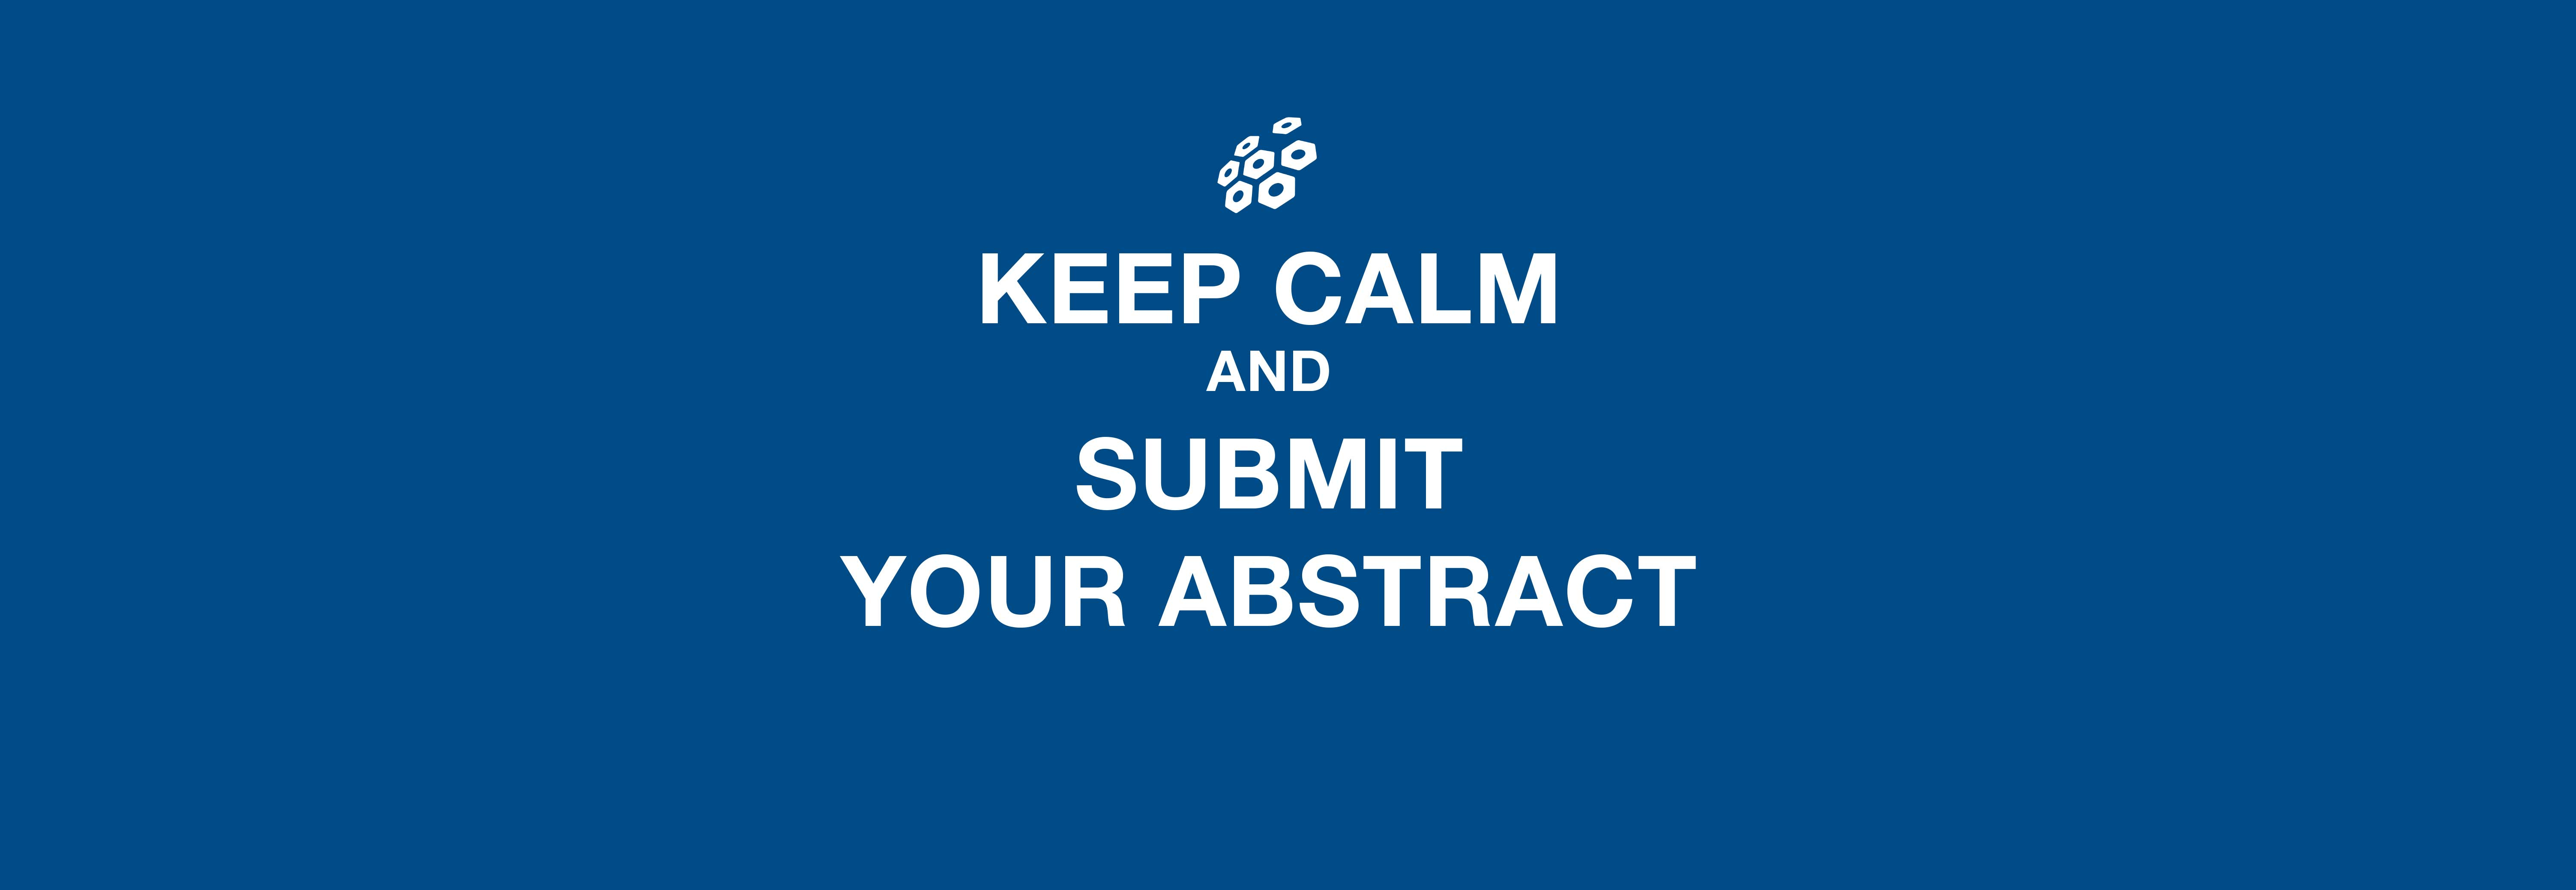 ilc-2020-webnews-submit-abstract